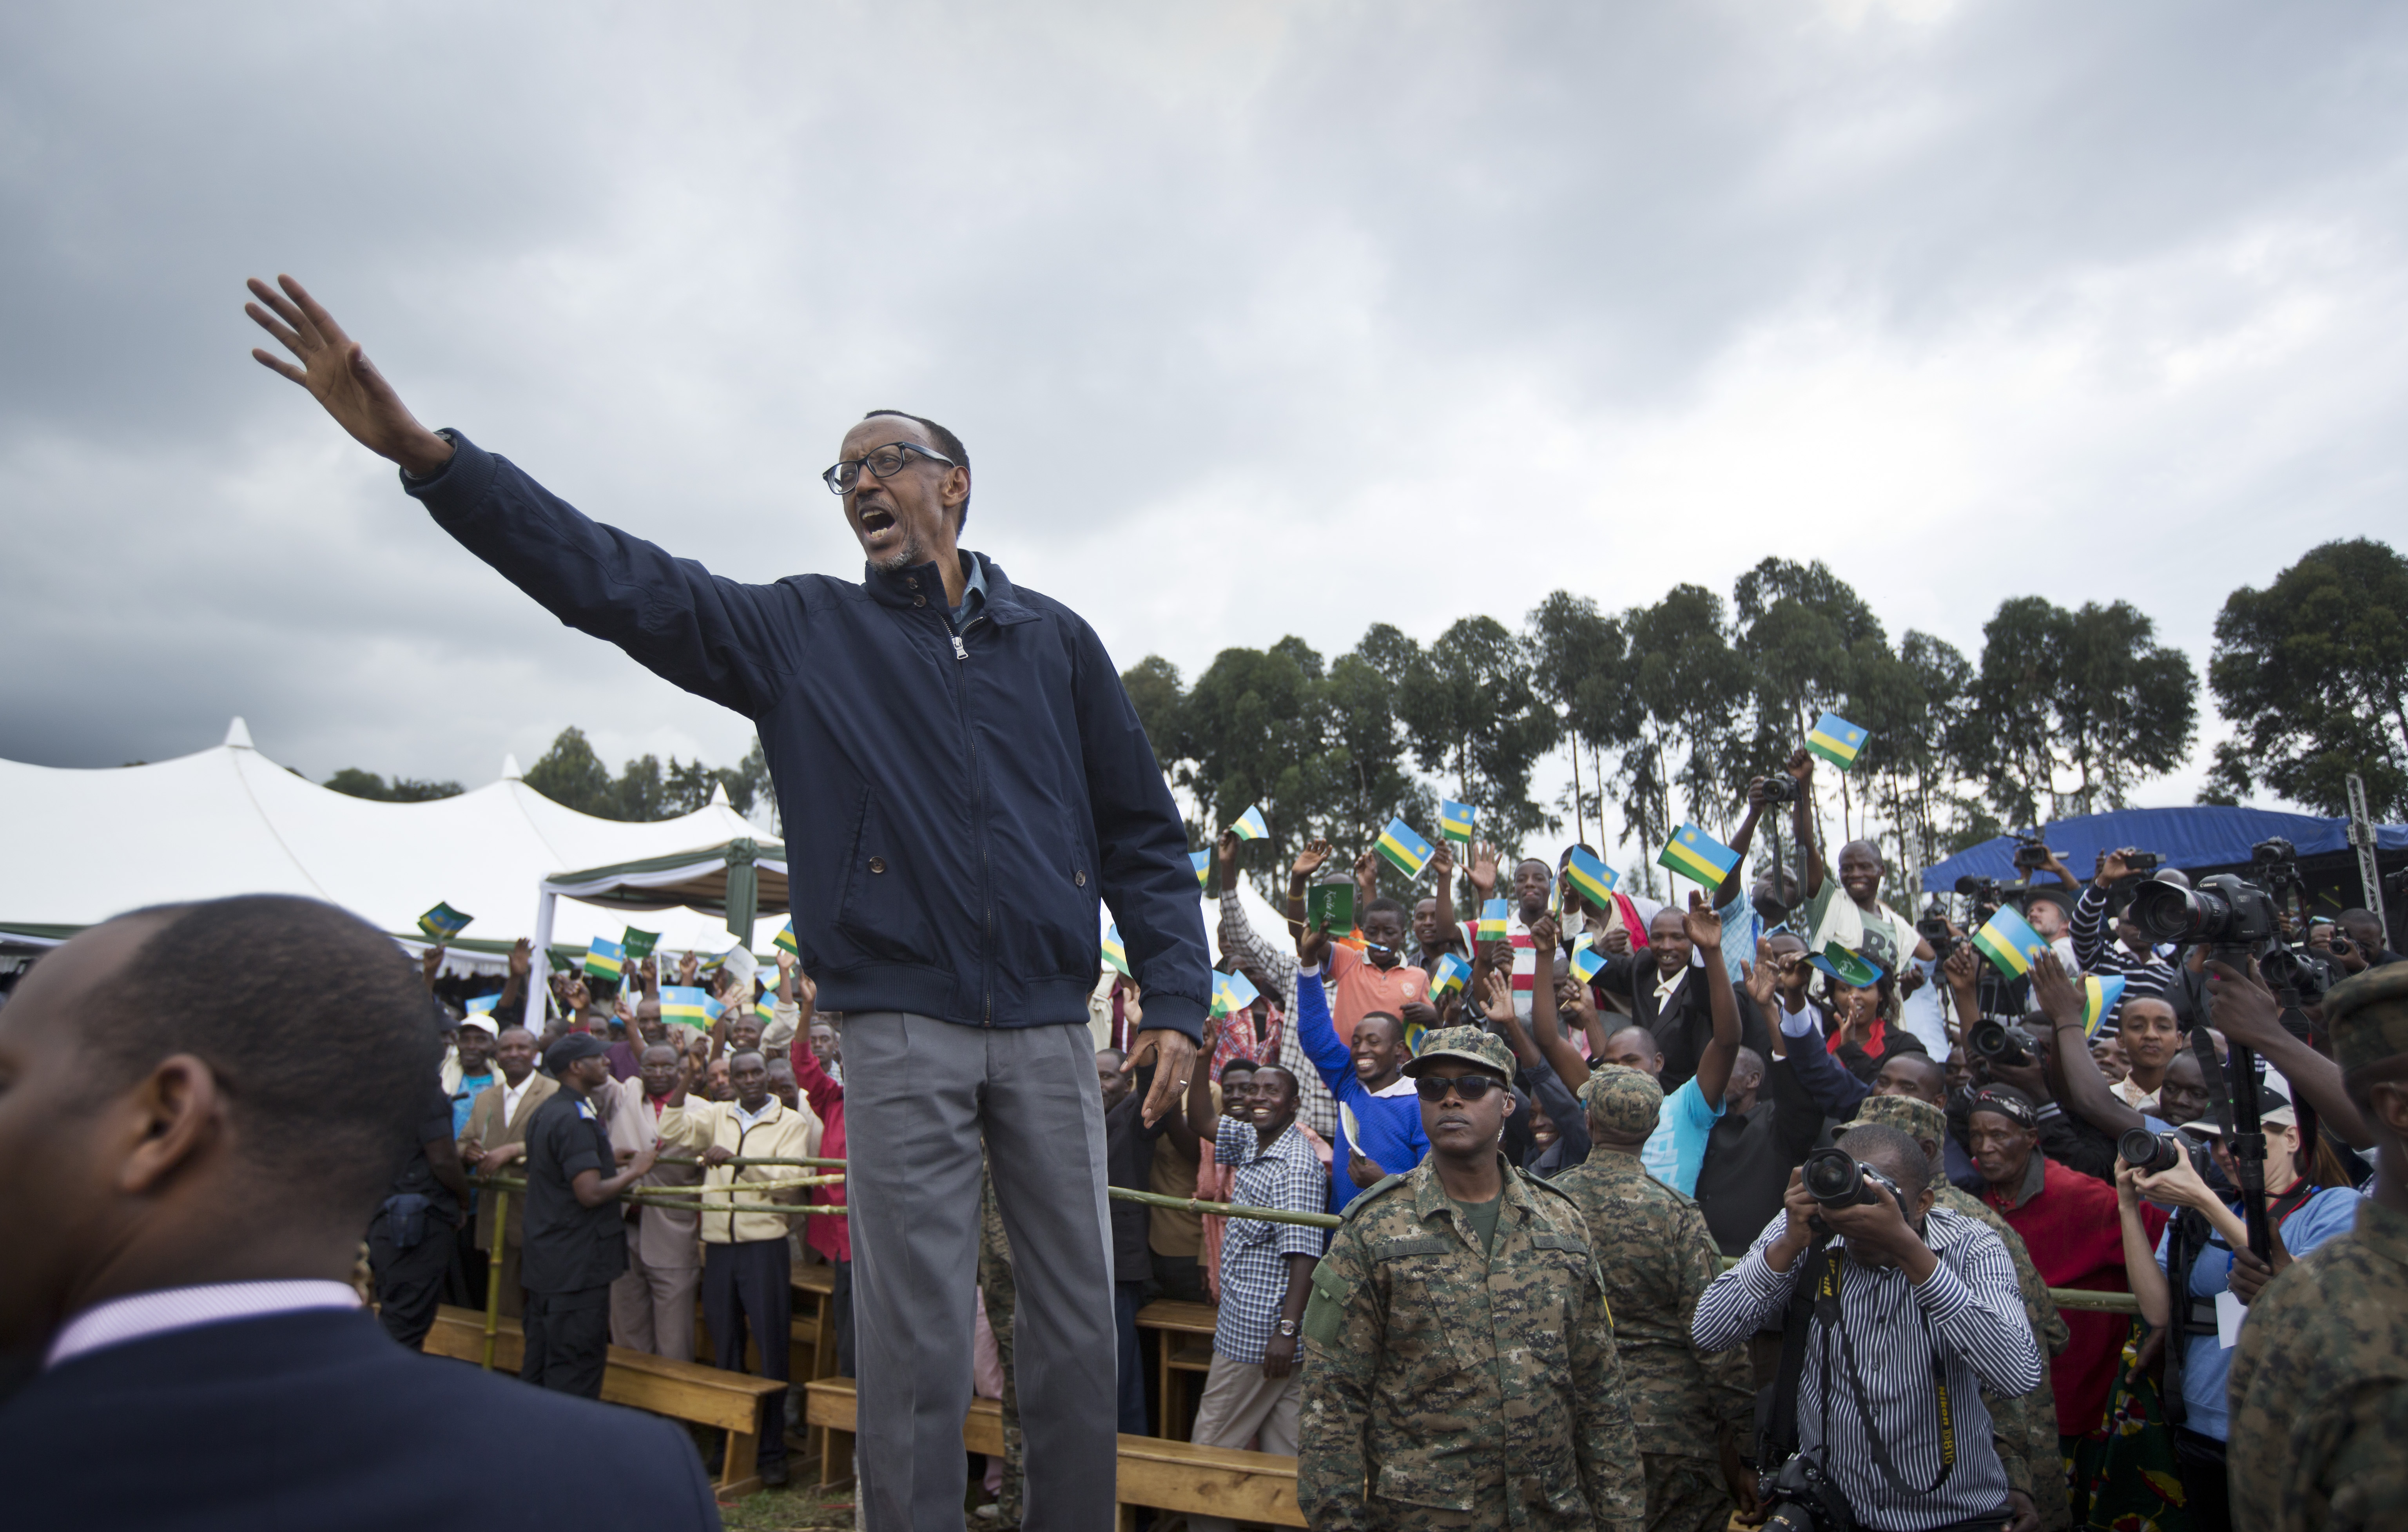 FILE - In this Saturday, Sept. 5, 2015 file photo, Rwanda's President Paul Kagame waves to the crowd before speaking at a baby gorilla naming ceremony in Kinigi, northern Rwanda. Rwanda will vote on Dec. 18, 2015 in a referendum which would allow President Paul Kagame to run again for re-election when his current seven-year term ends in 2017, as he is currently ineligible because the Rwandan constitution limits a president to two terms. (AP Photo/Ben Curtis, File)